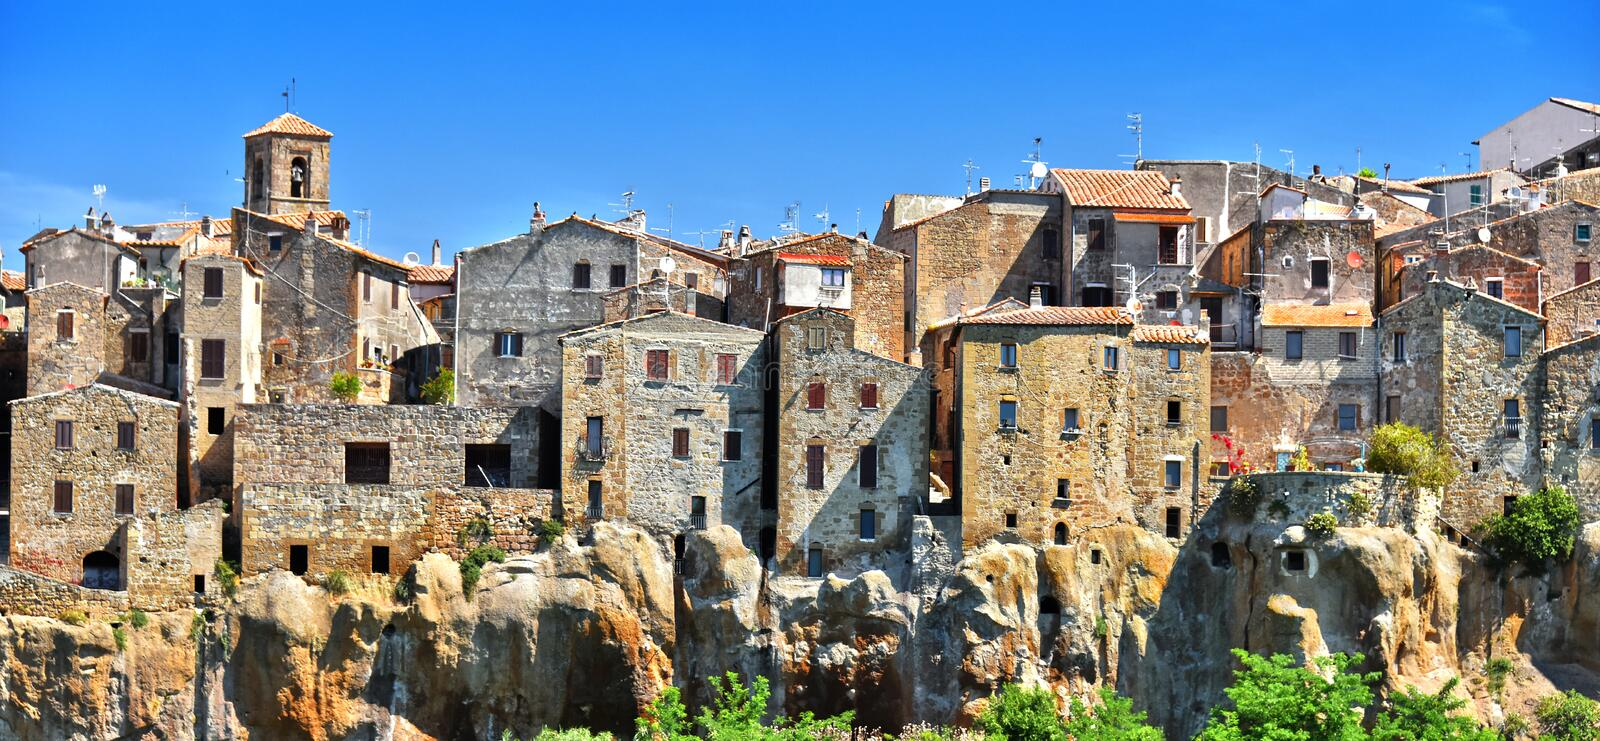 City of Pitigliano in the province of Grosseto in Tuscany, Italy. City of Pitigliano in the province of Grosseto in Tuscany, Italy royalty free stock photos